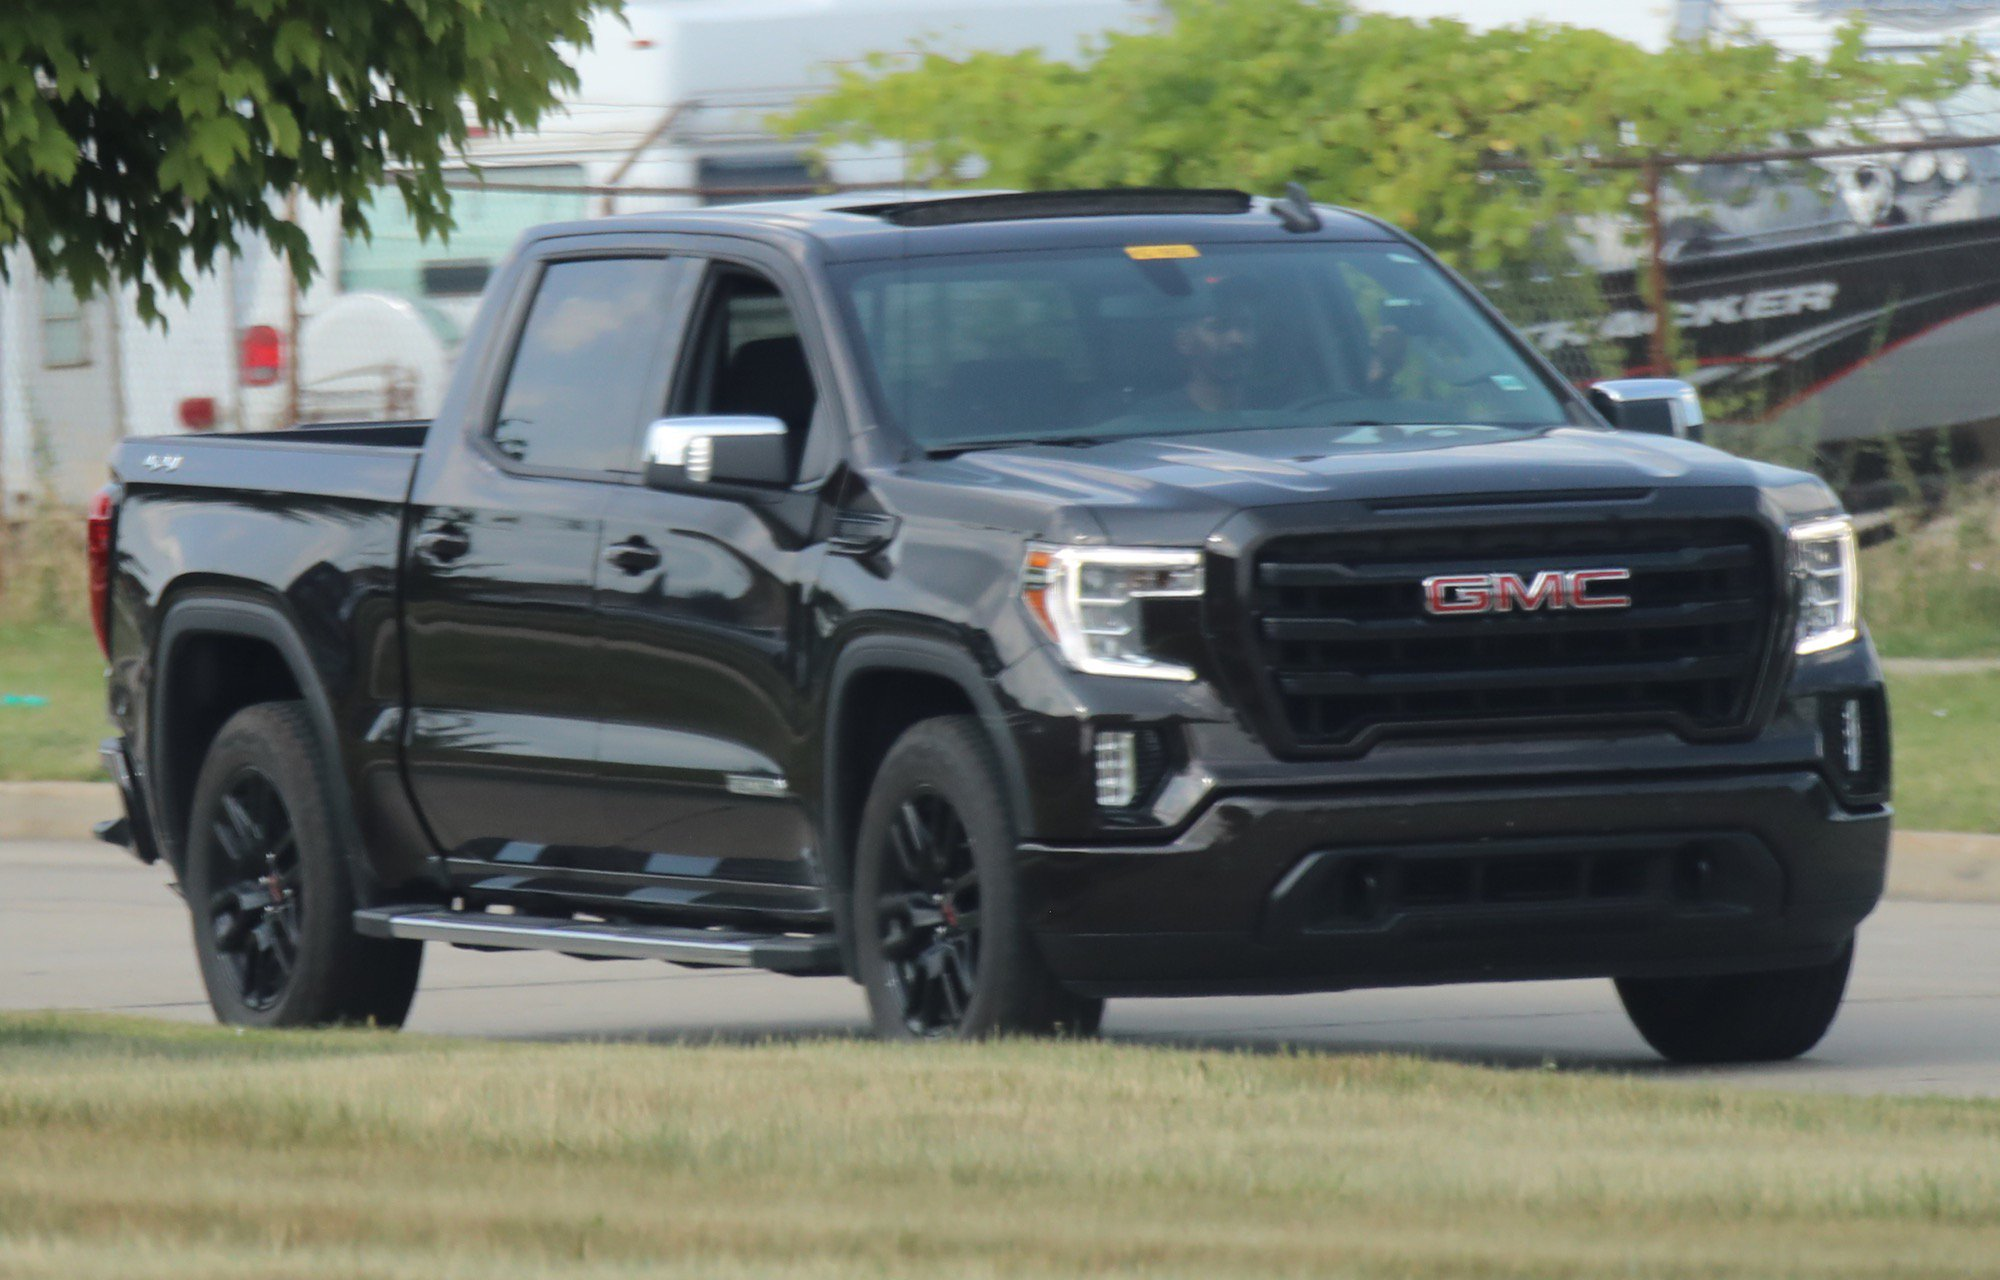 79 All New 2019 GMC Sierra Hd Spesification